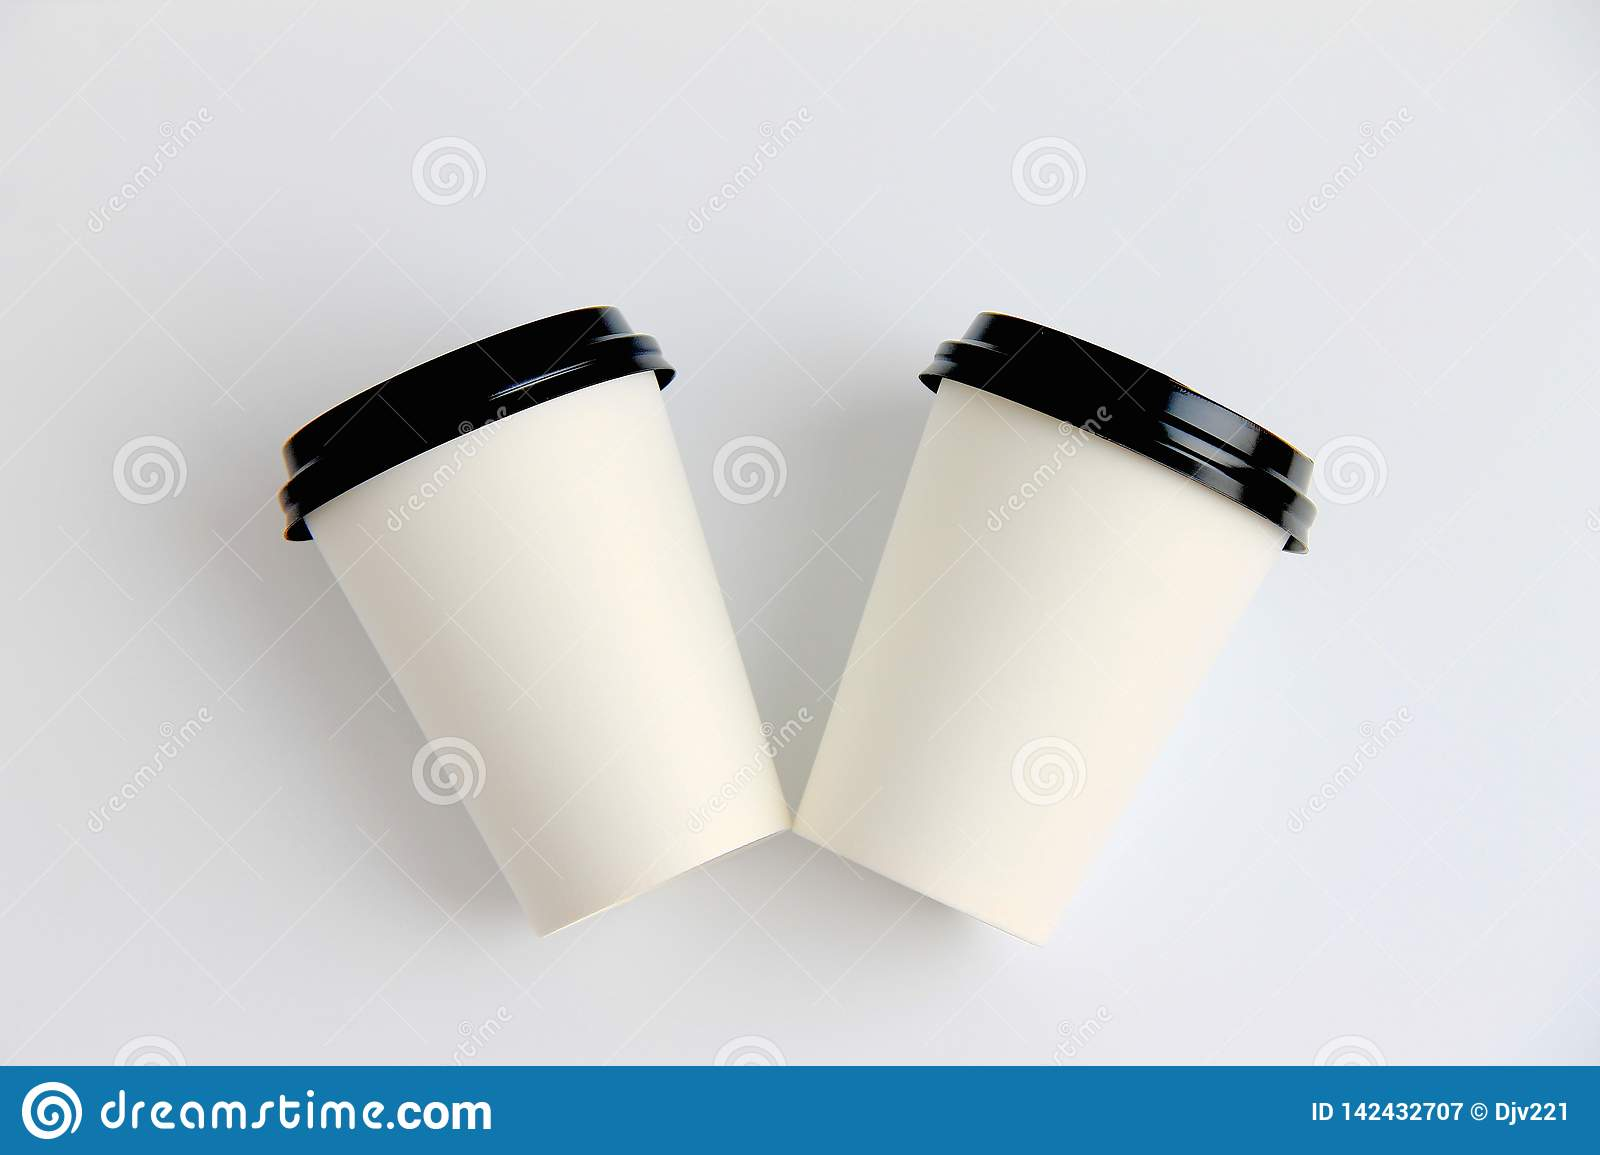 Two paper glasses with lids on a light background side view